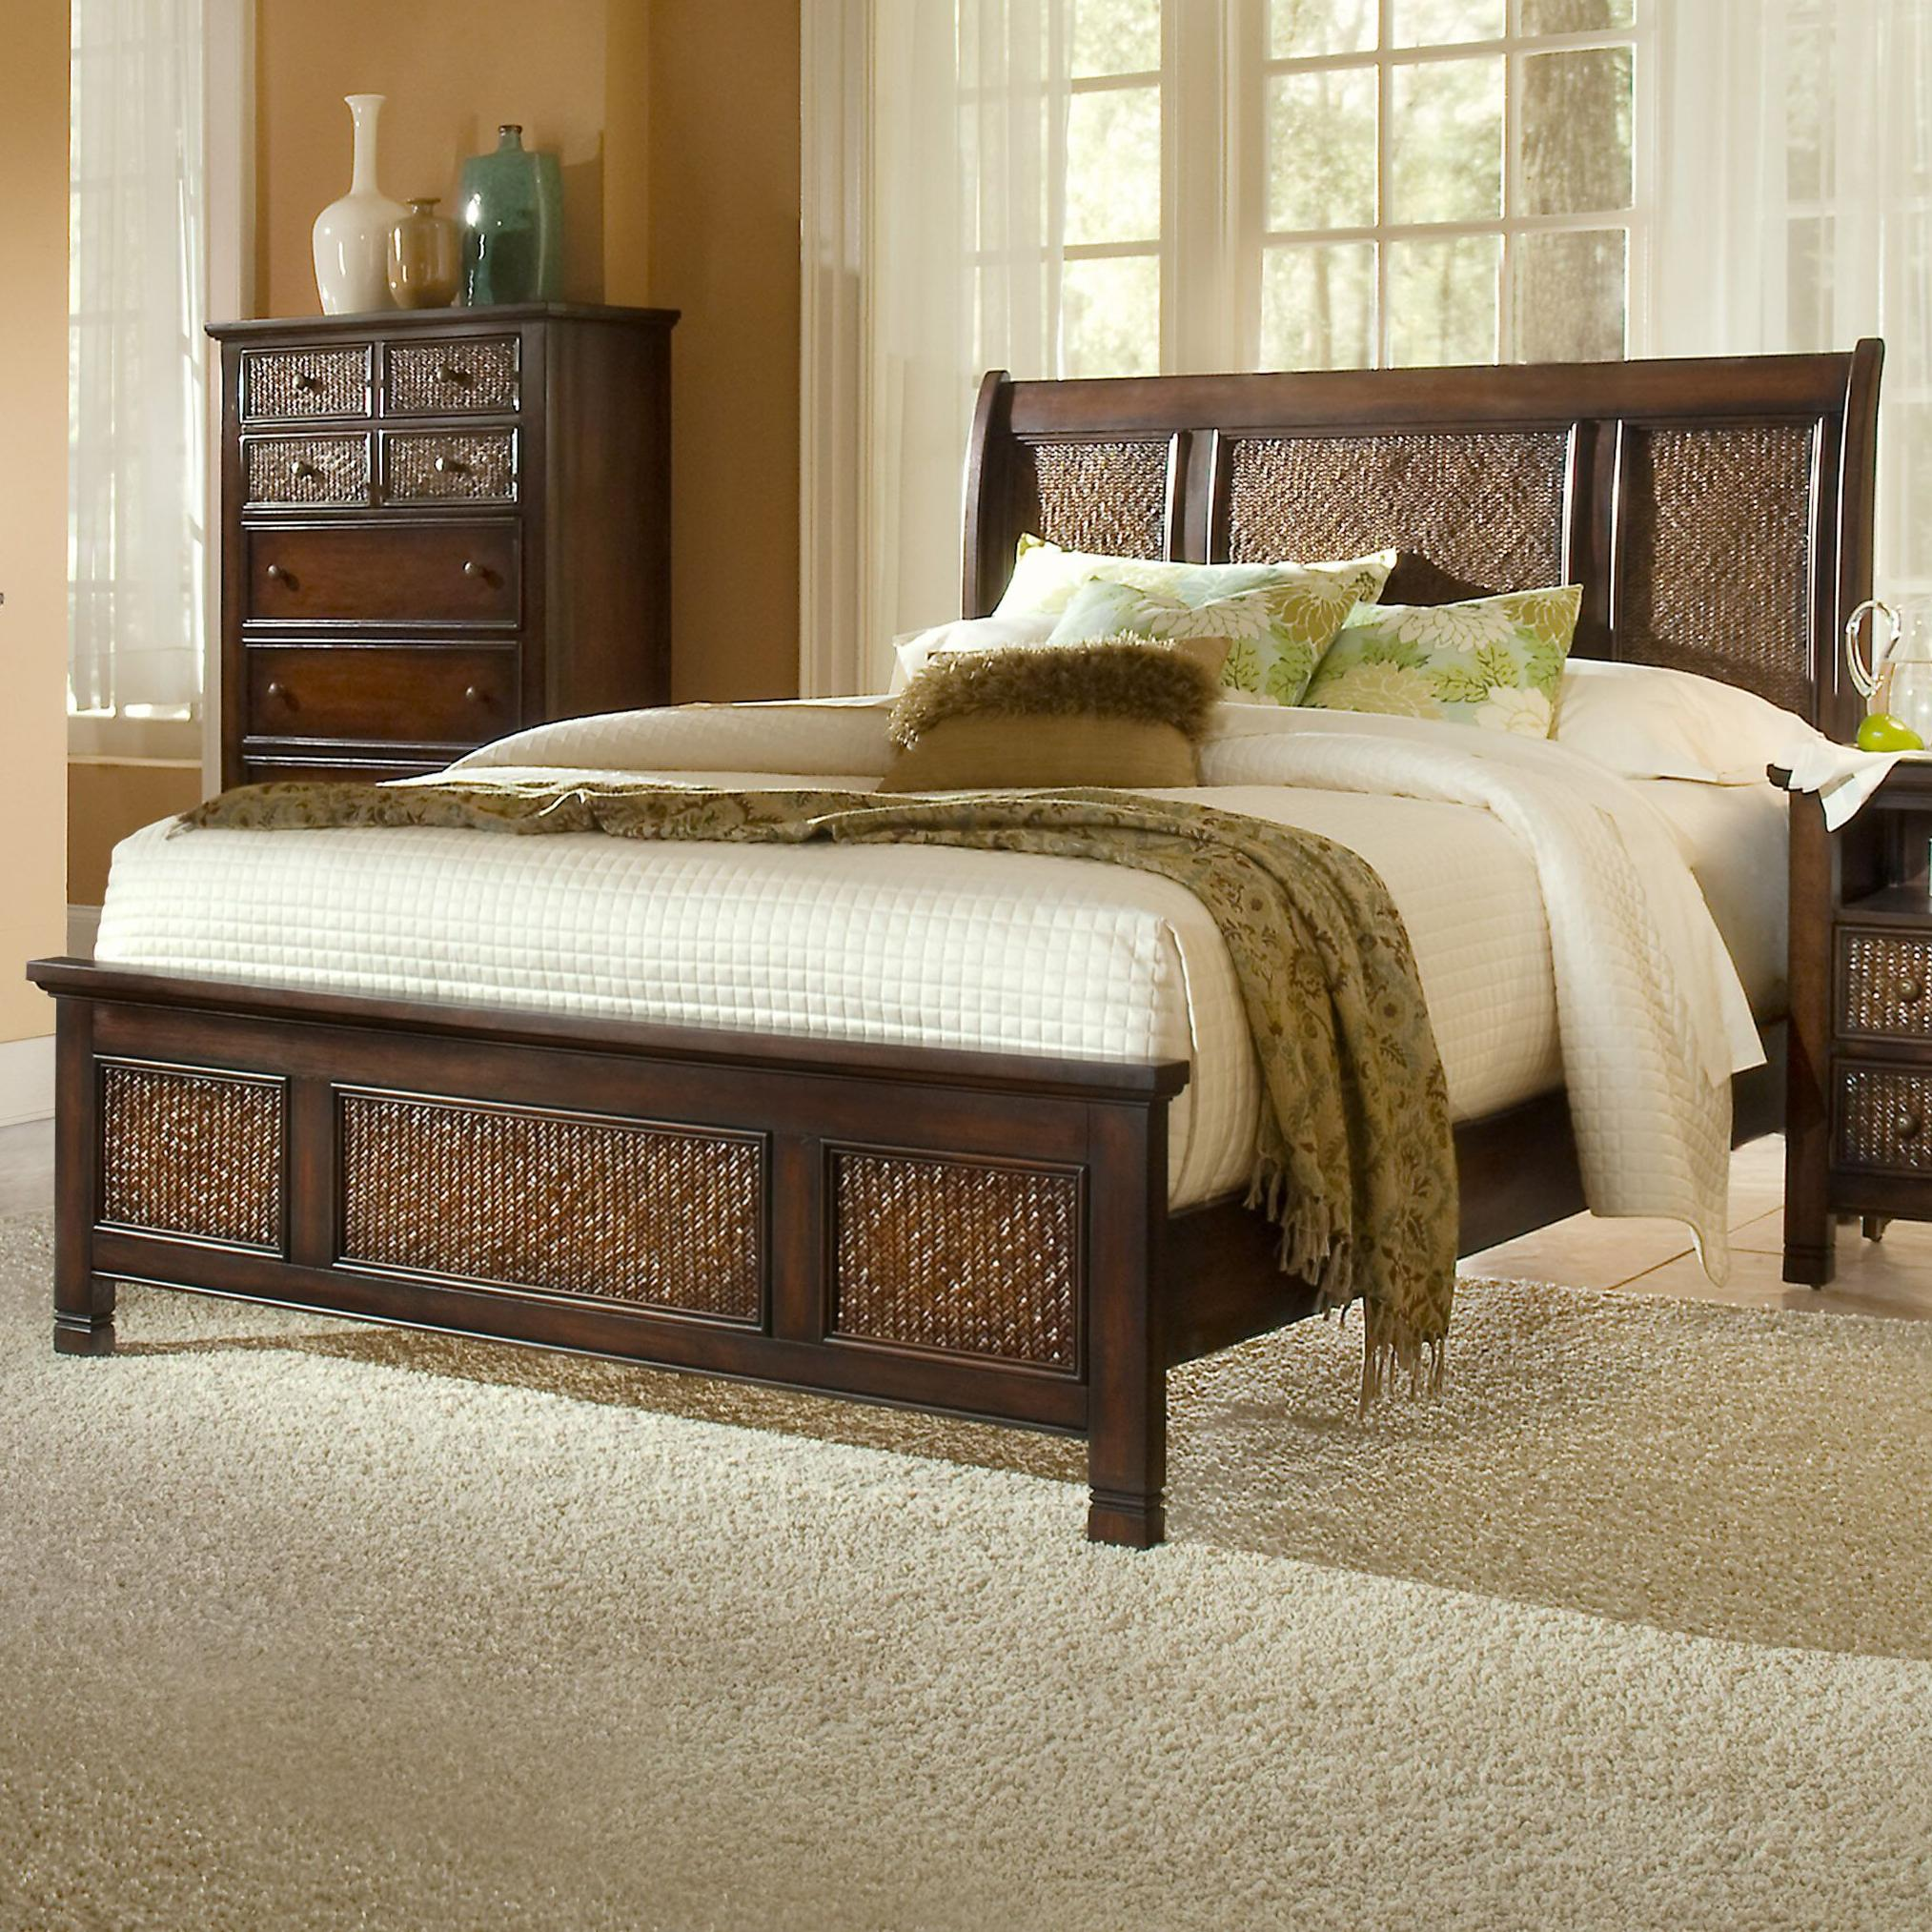 Progressive Furniture Kingston Isle Queen Sleigh/Platform Bed - Item Number: P195-80+1+3